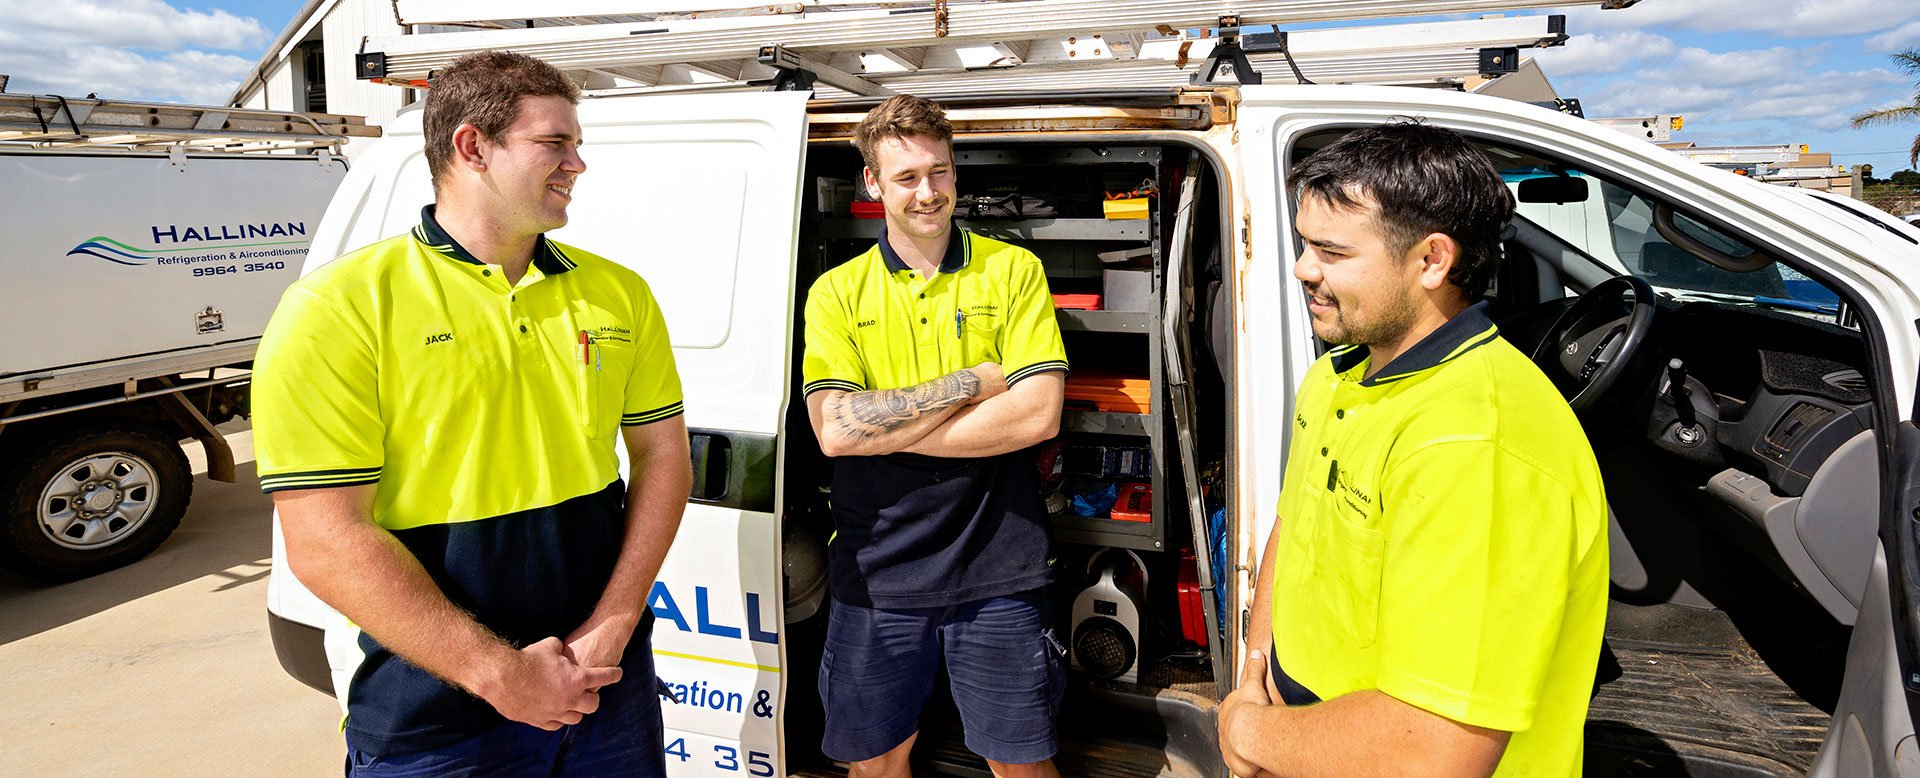 Apprentices talking in front of Hallinan Air Conditioning Head office in Geraldton